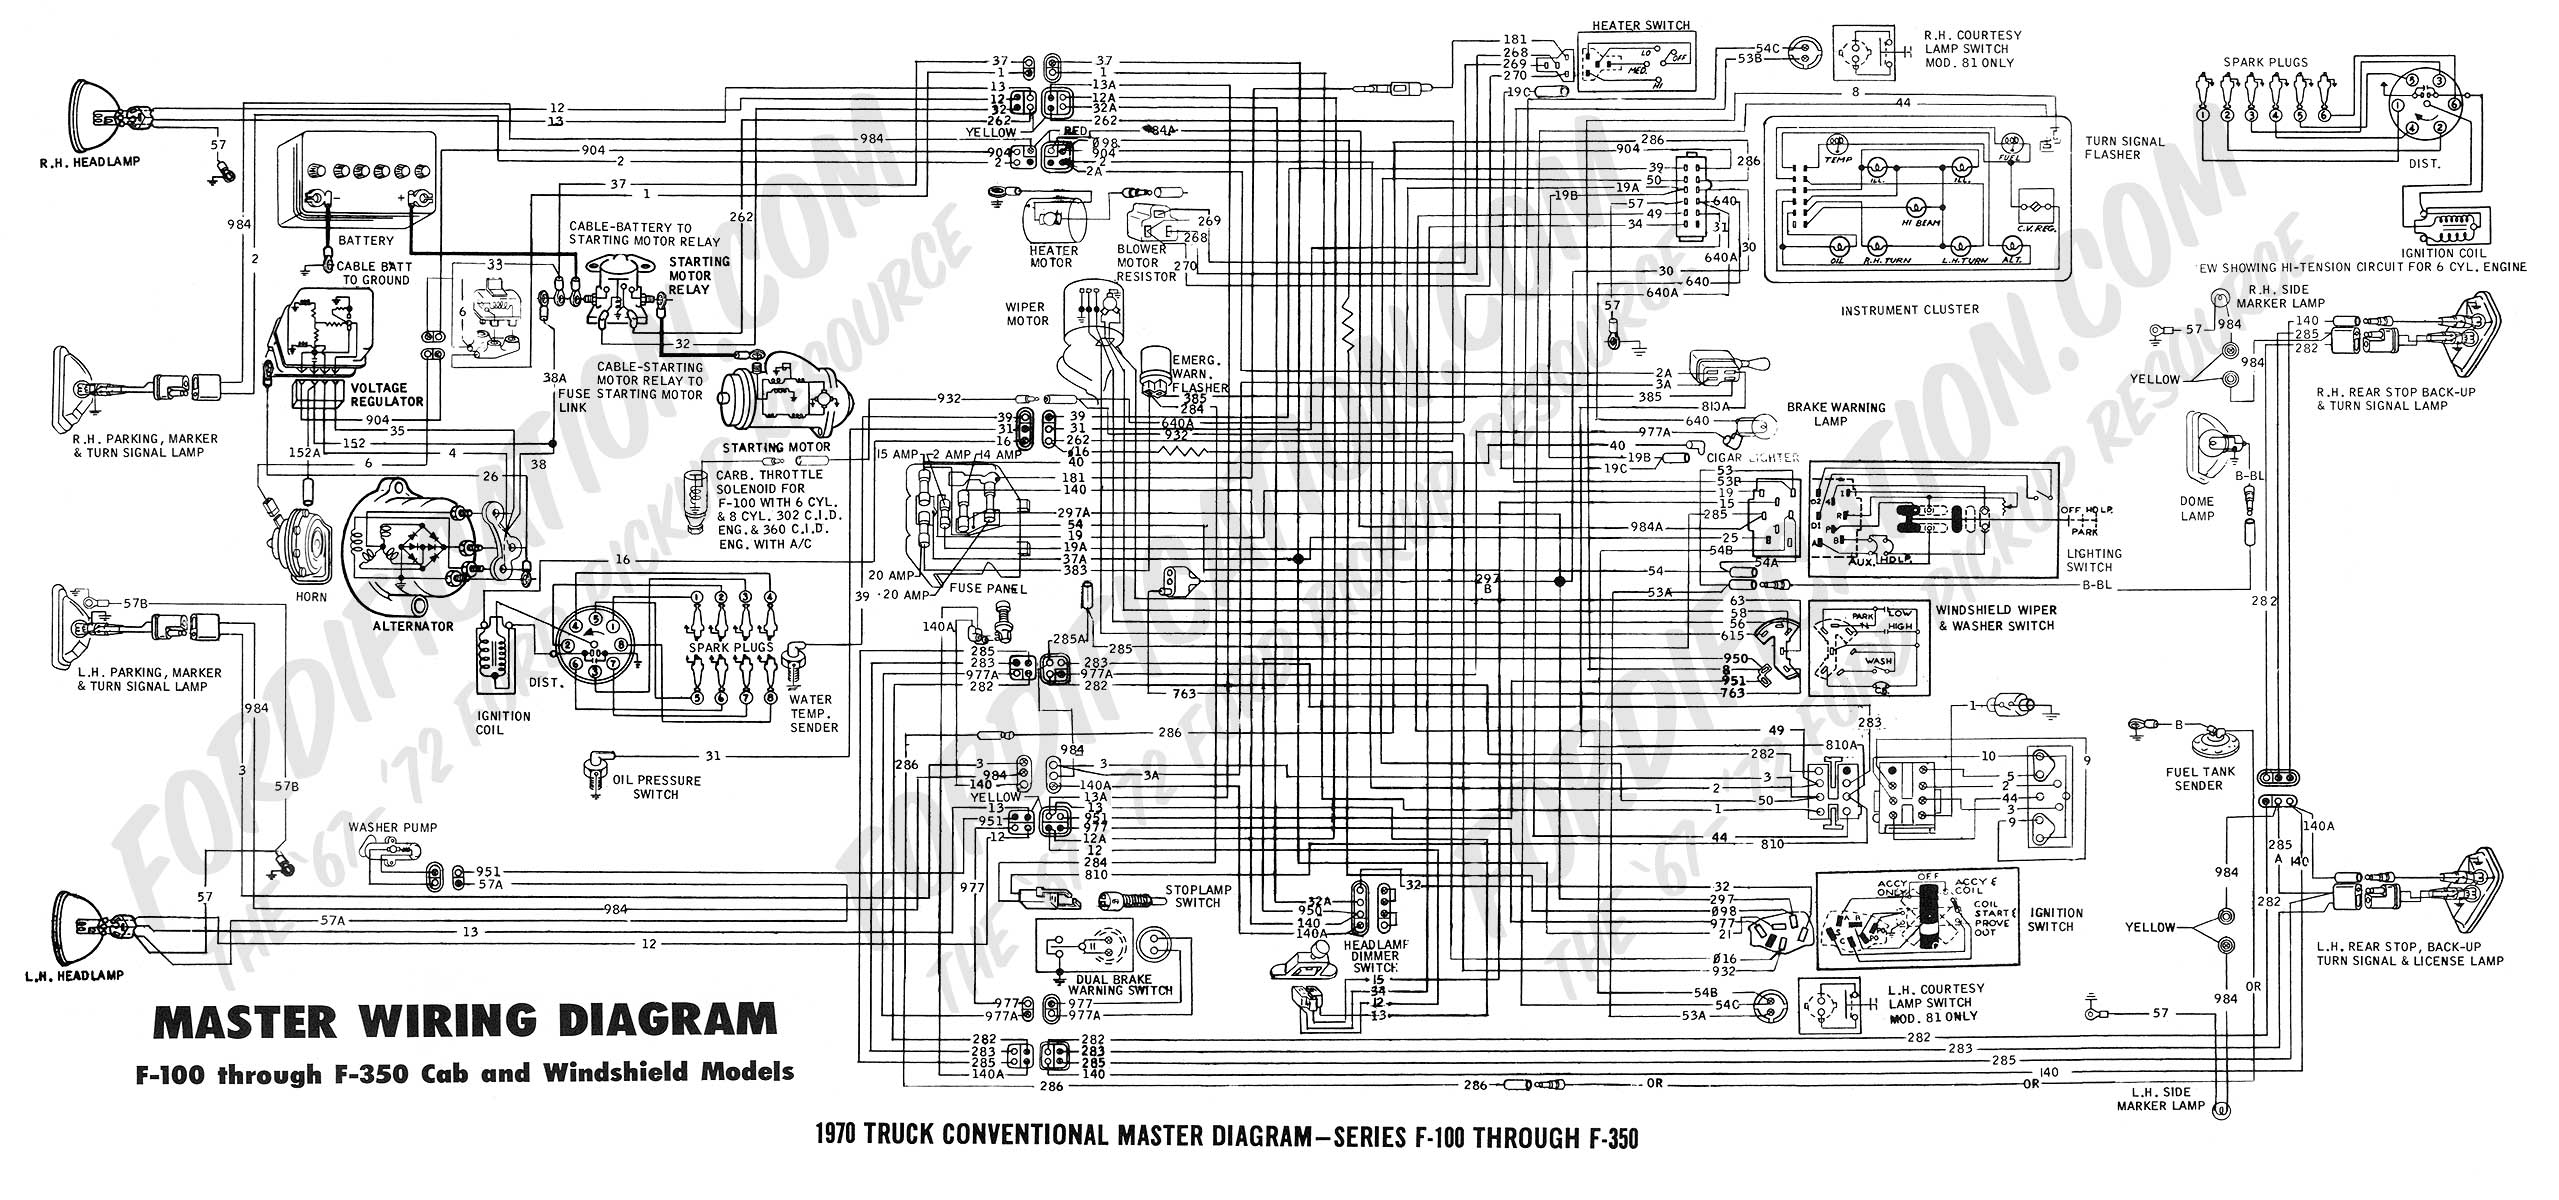 Hd Wiring Diagrams Ford Wiring Diagrams Wiring Diagrams Online